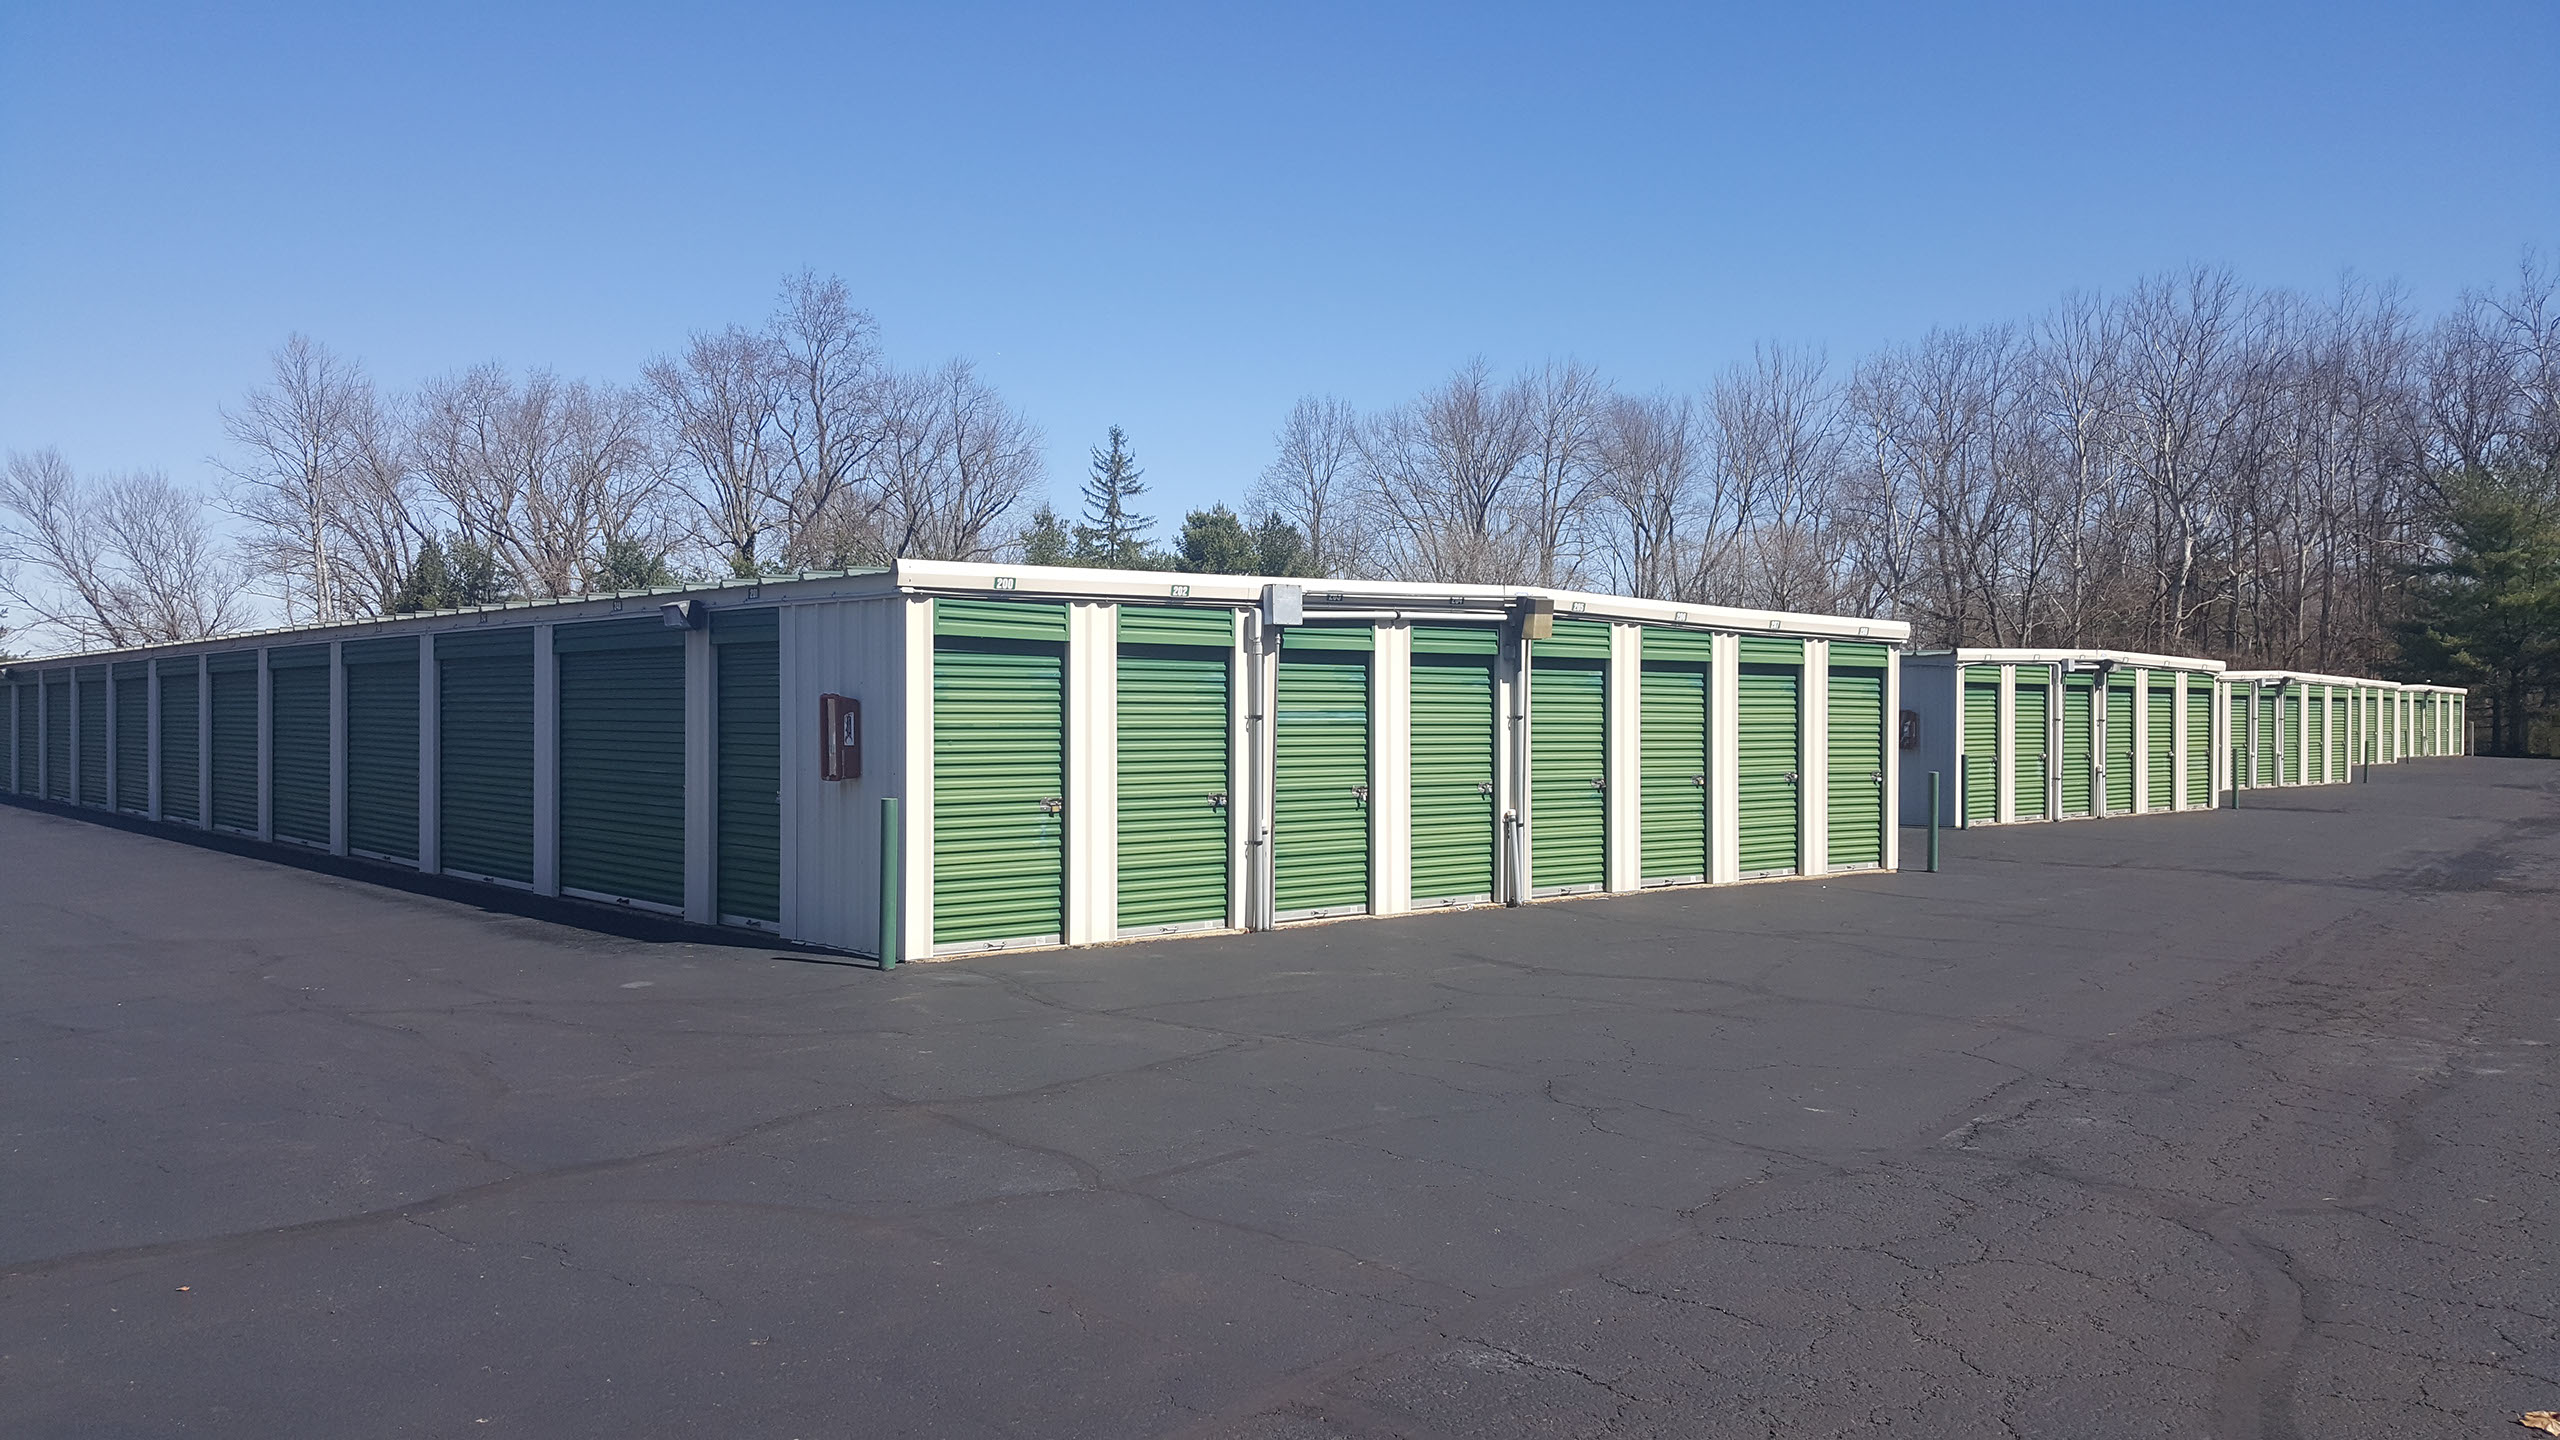 Storage Units Stockton NJ | Storage Rental Units Stockton NJ | Magill 215-862-6933 Call Now & Storage Units Stockton NJ | Storage Rental Units Stockton NJ ...